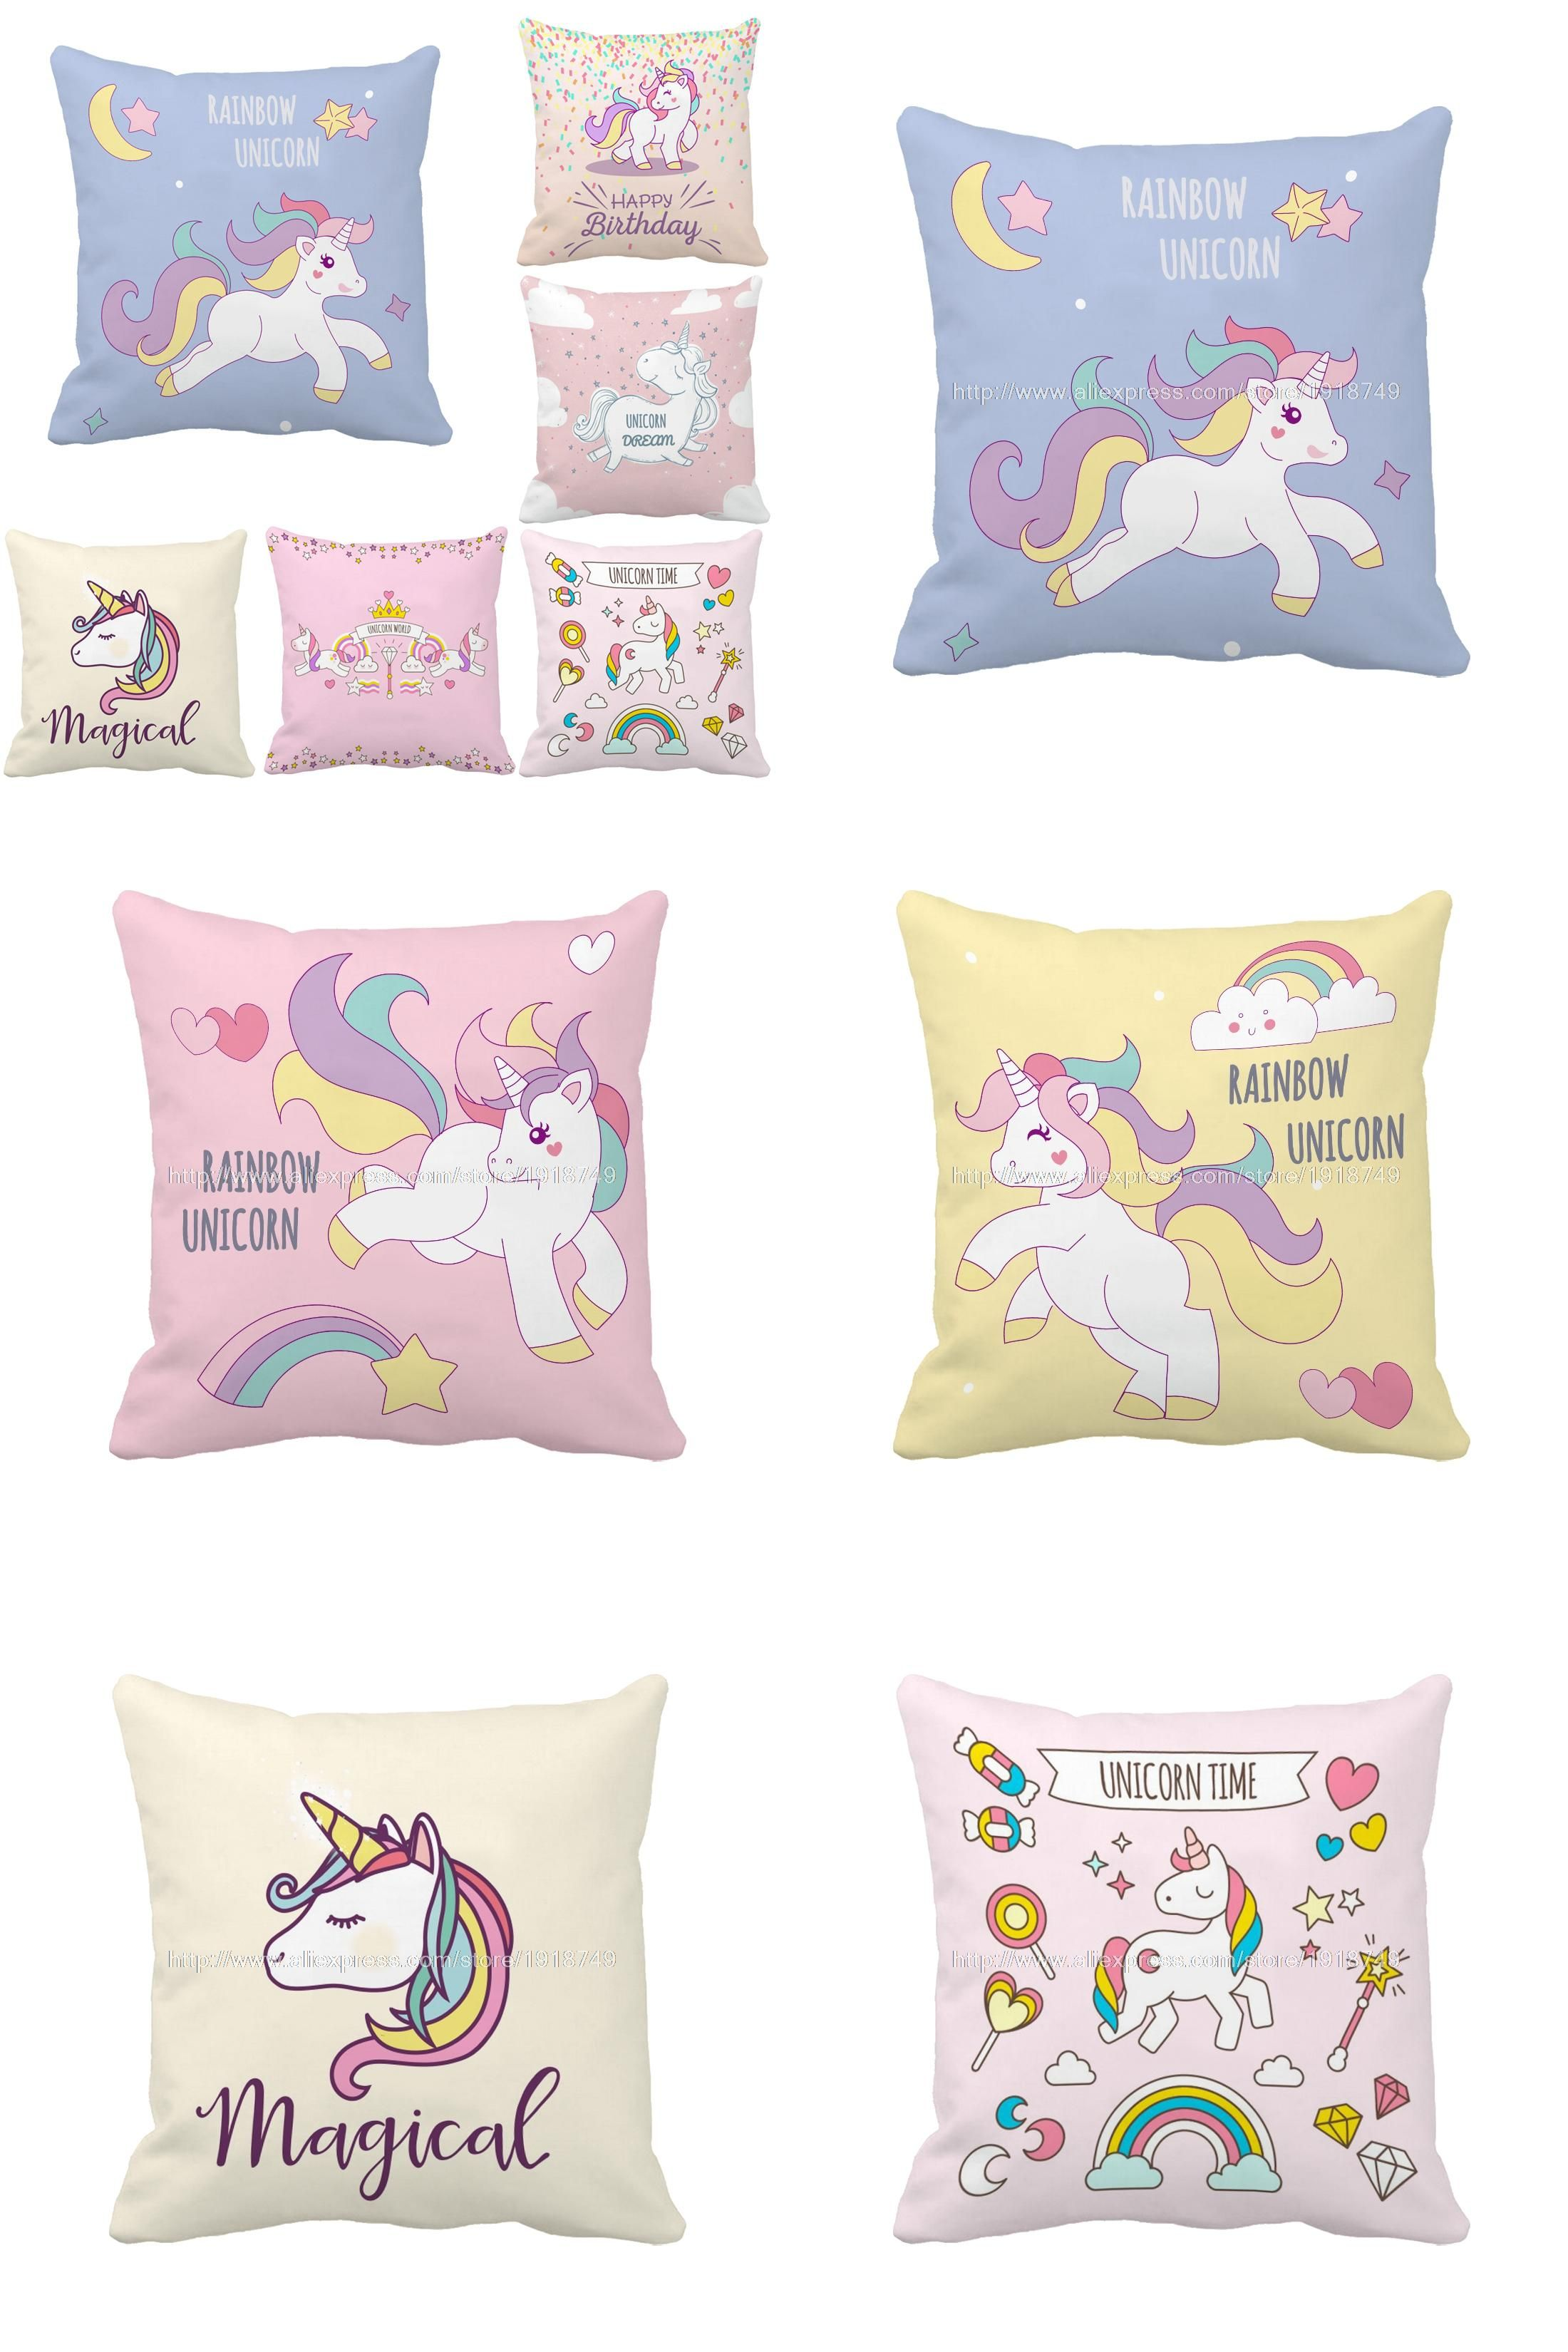 pillowcase off pillow customized cases personalized super first astounding soft simple minky pillowcases gh now case custom